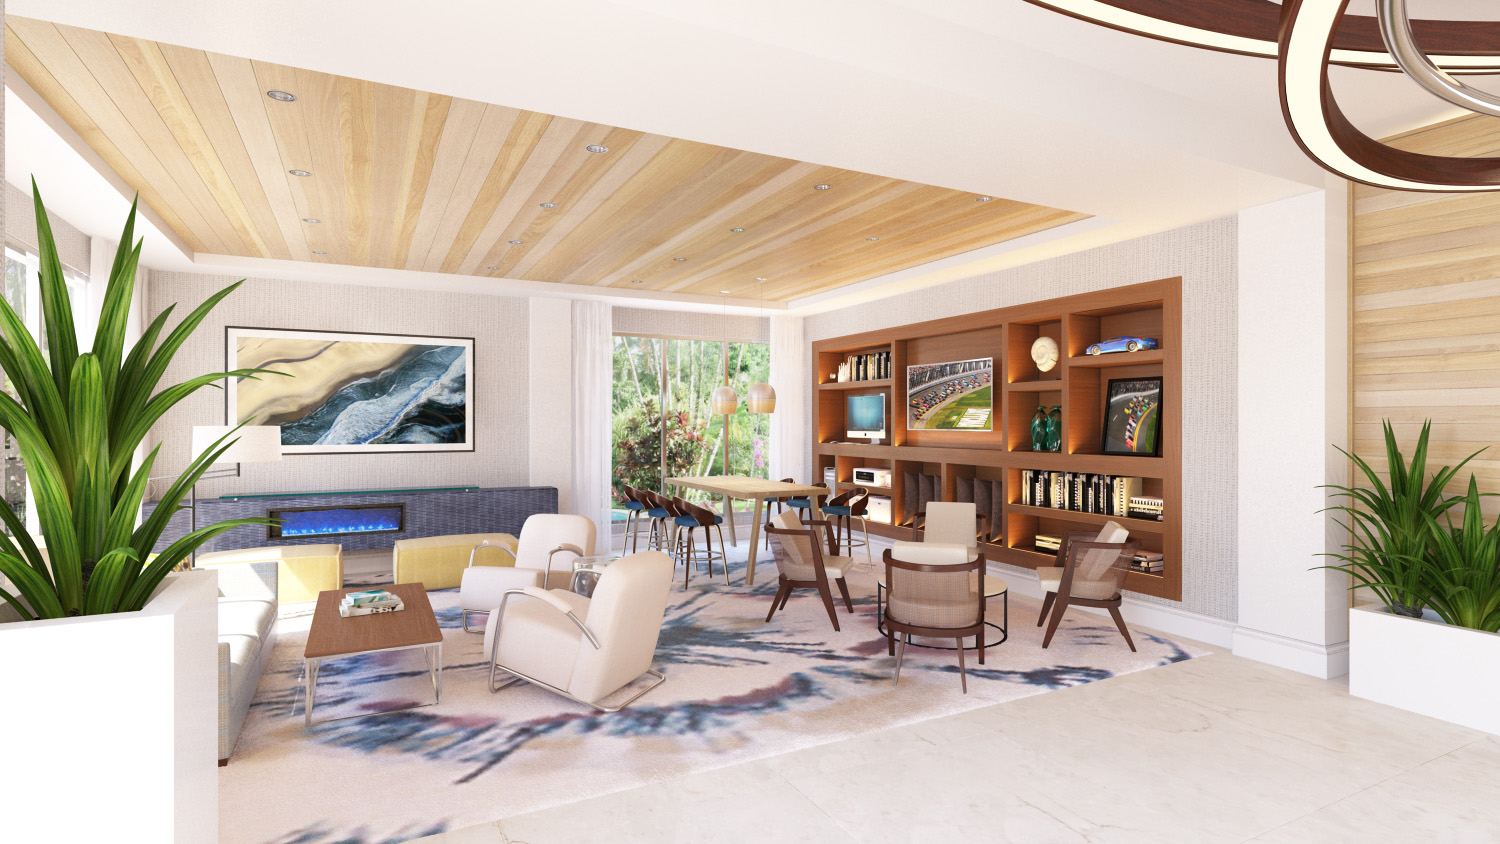 Lobby at Delta Hotel Daytona Shores, in Daytona Beach, FL, Designed by Design Poole, Inc in Winter Park Florida